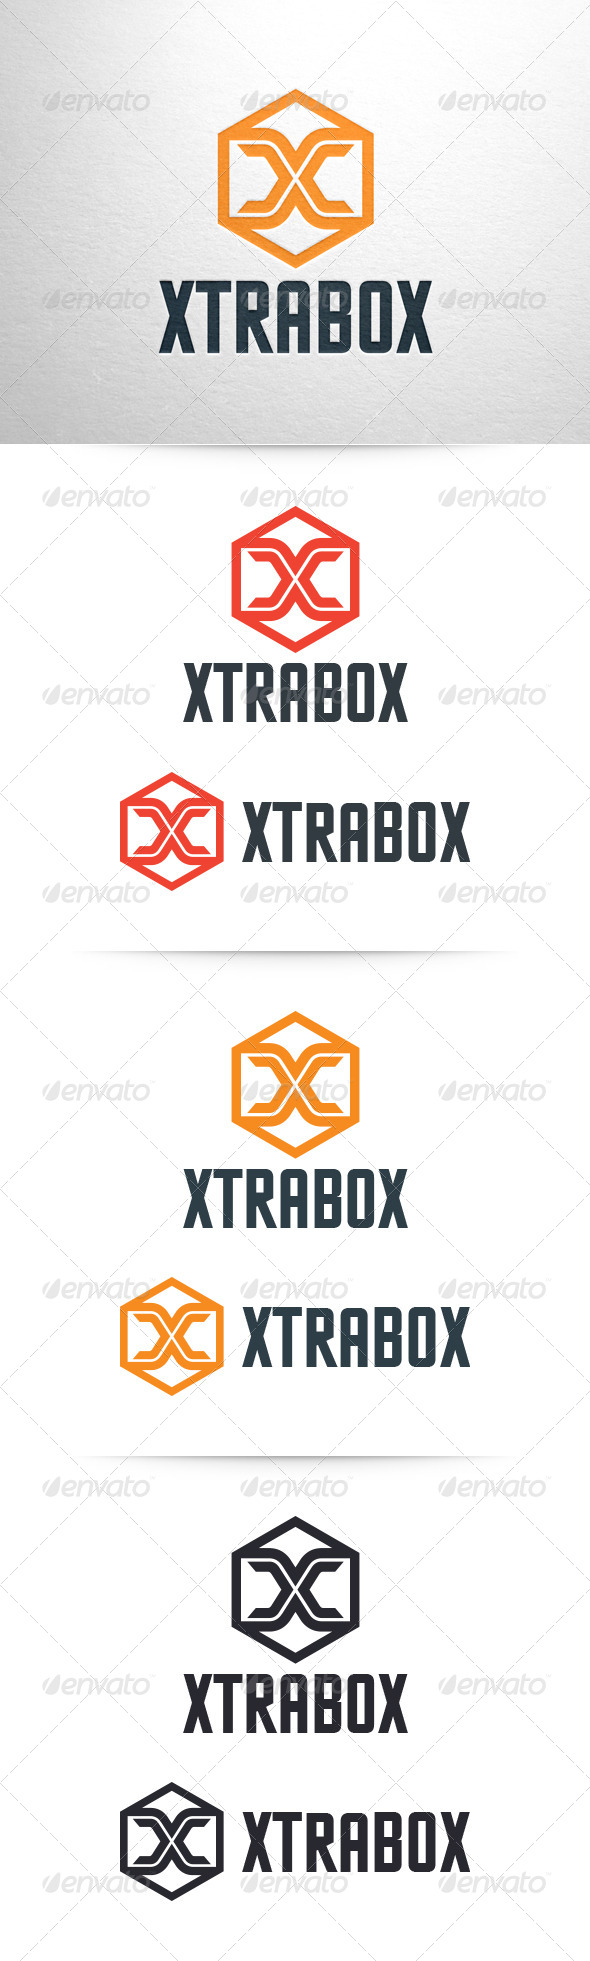 GraphicRiver Xtrabox Letter X Logo Template 6464907